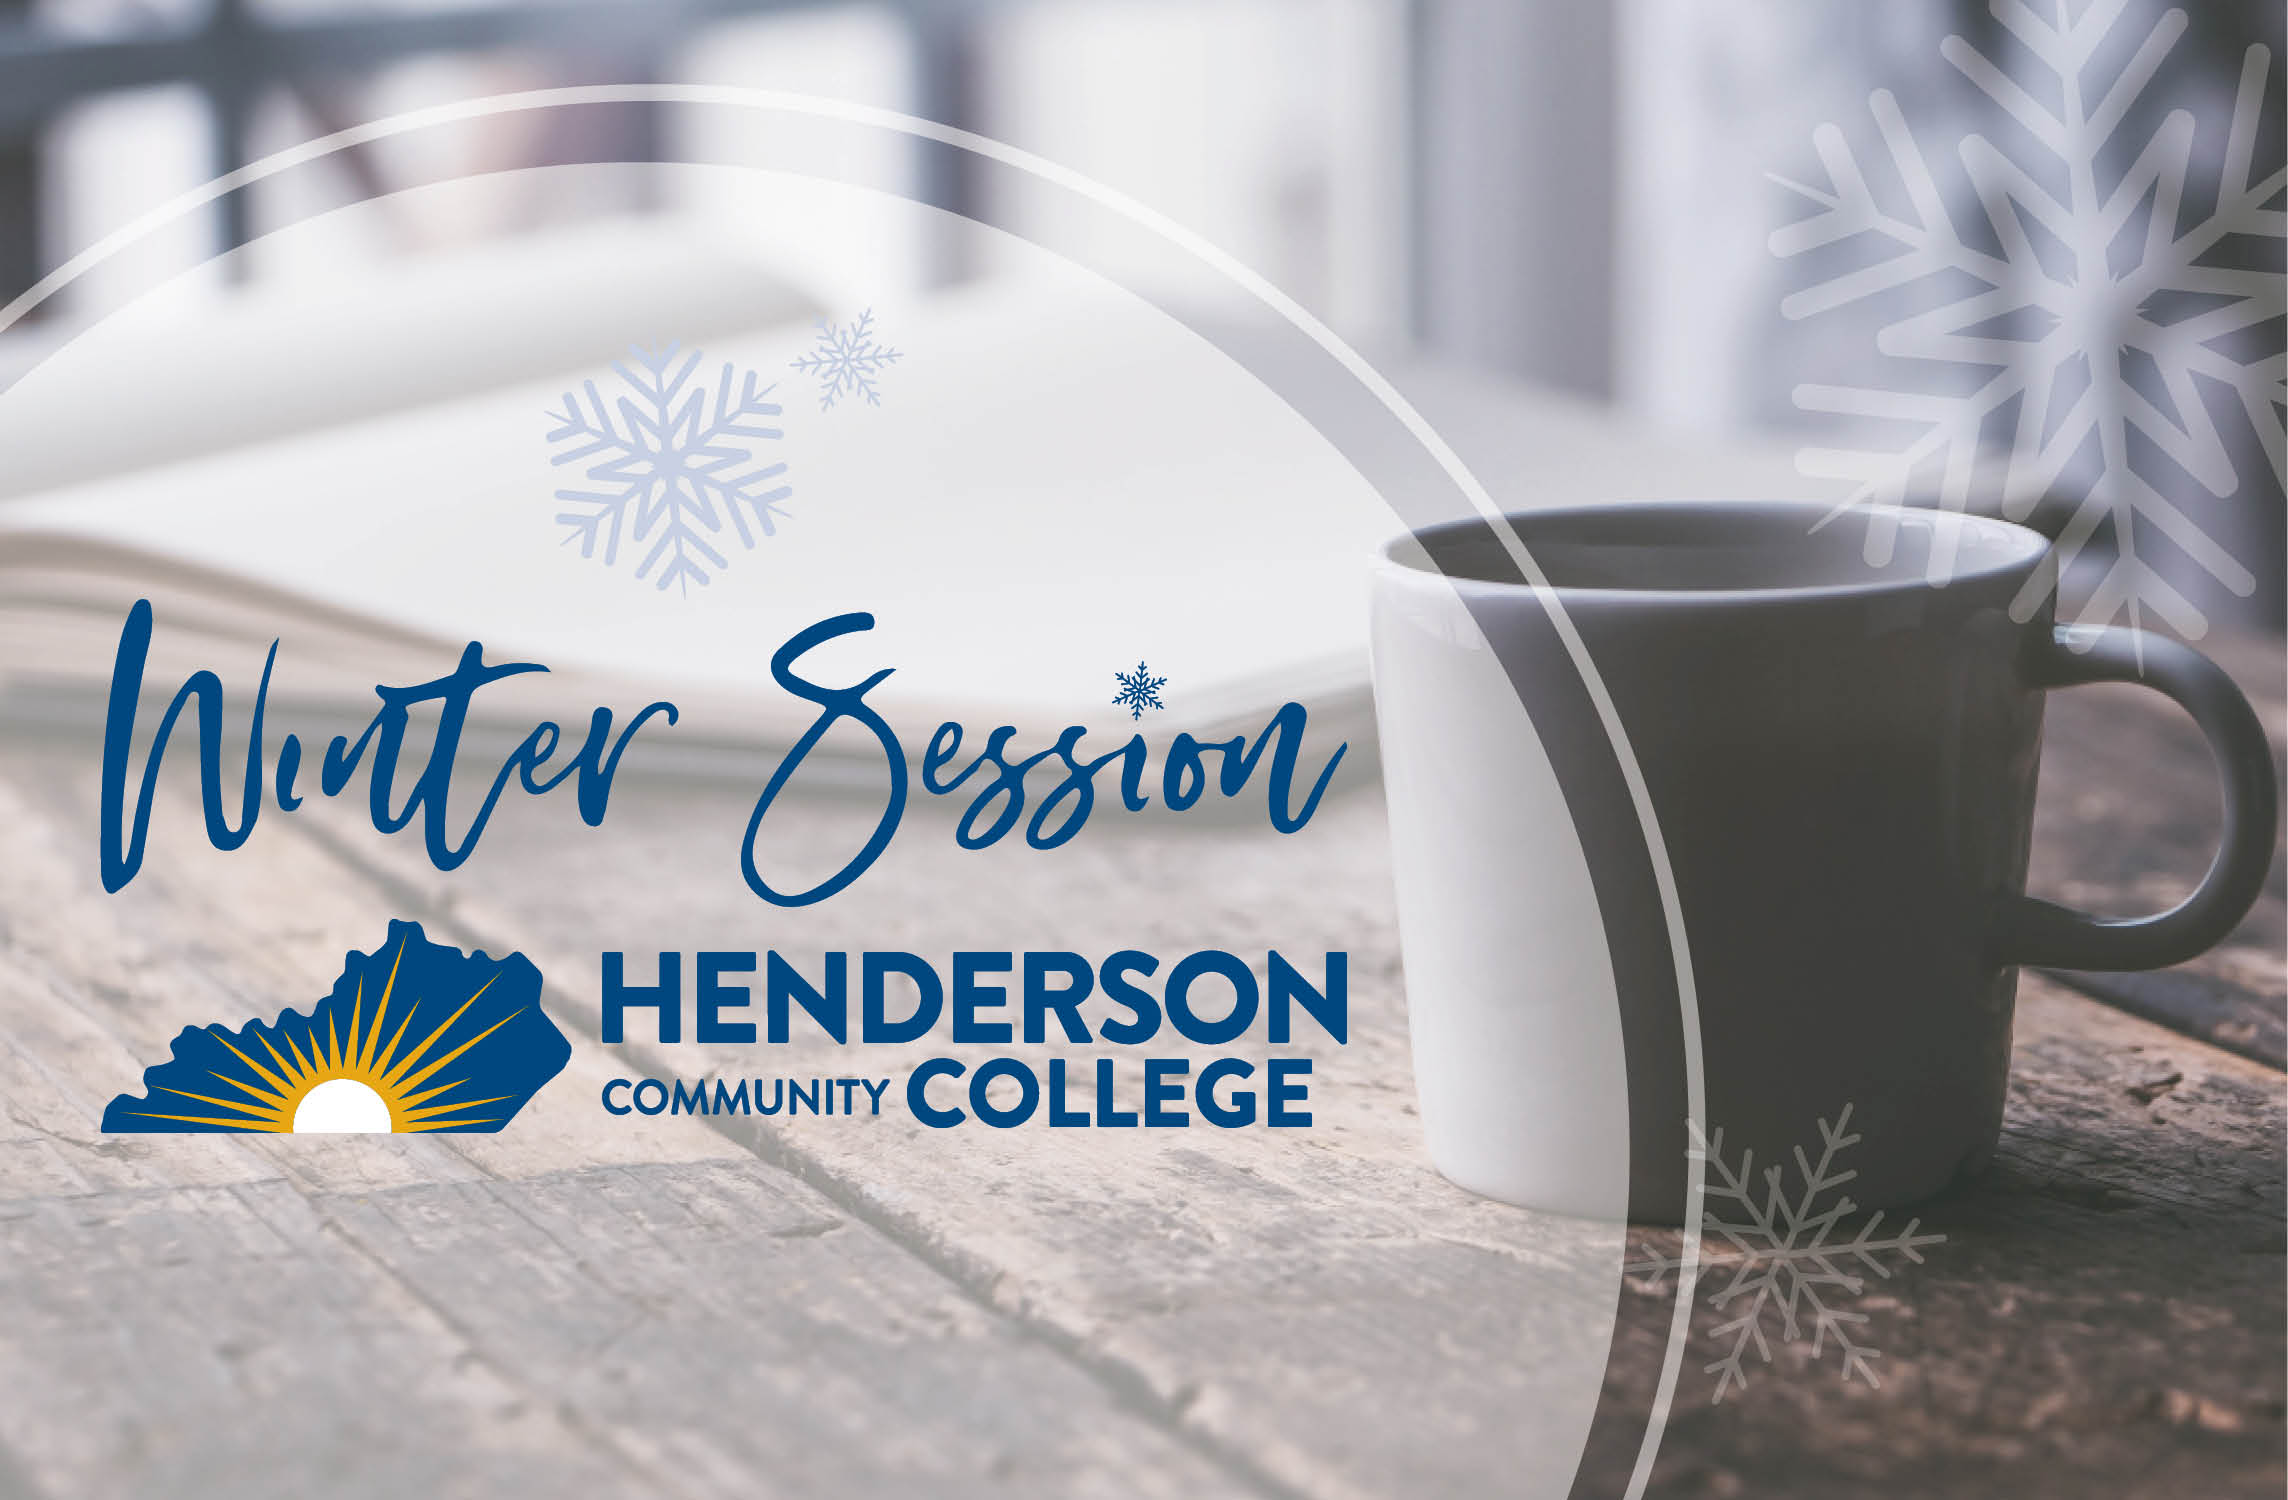 """At Henderson Community College (HCC), we strive to both meet and exceed the needs of our current and potential students, no matter the season. We understand that the """"traditional schedule"""" might not work for everyone, especially in the unique circumstances we are all currently facing. With that in mind, HCC is offering additional learning opportunities this year with a new, online winter term from December 2020 – January 2021 for current and new students, as well as those visiting from other institutions."""